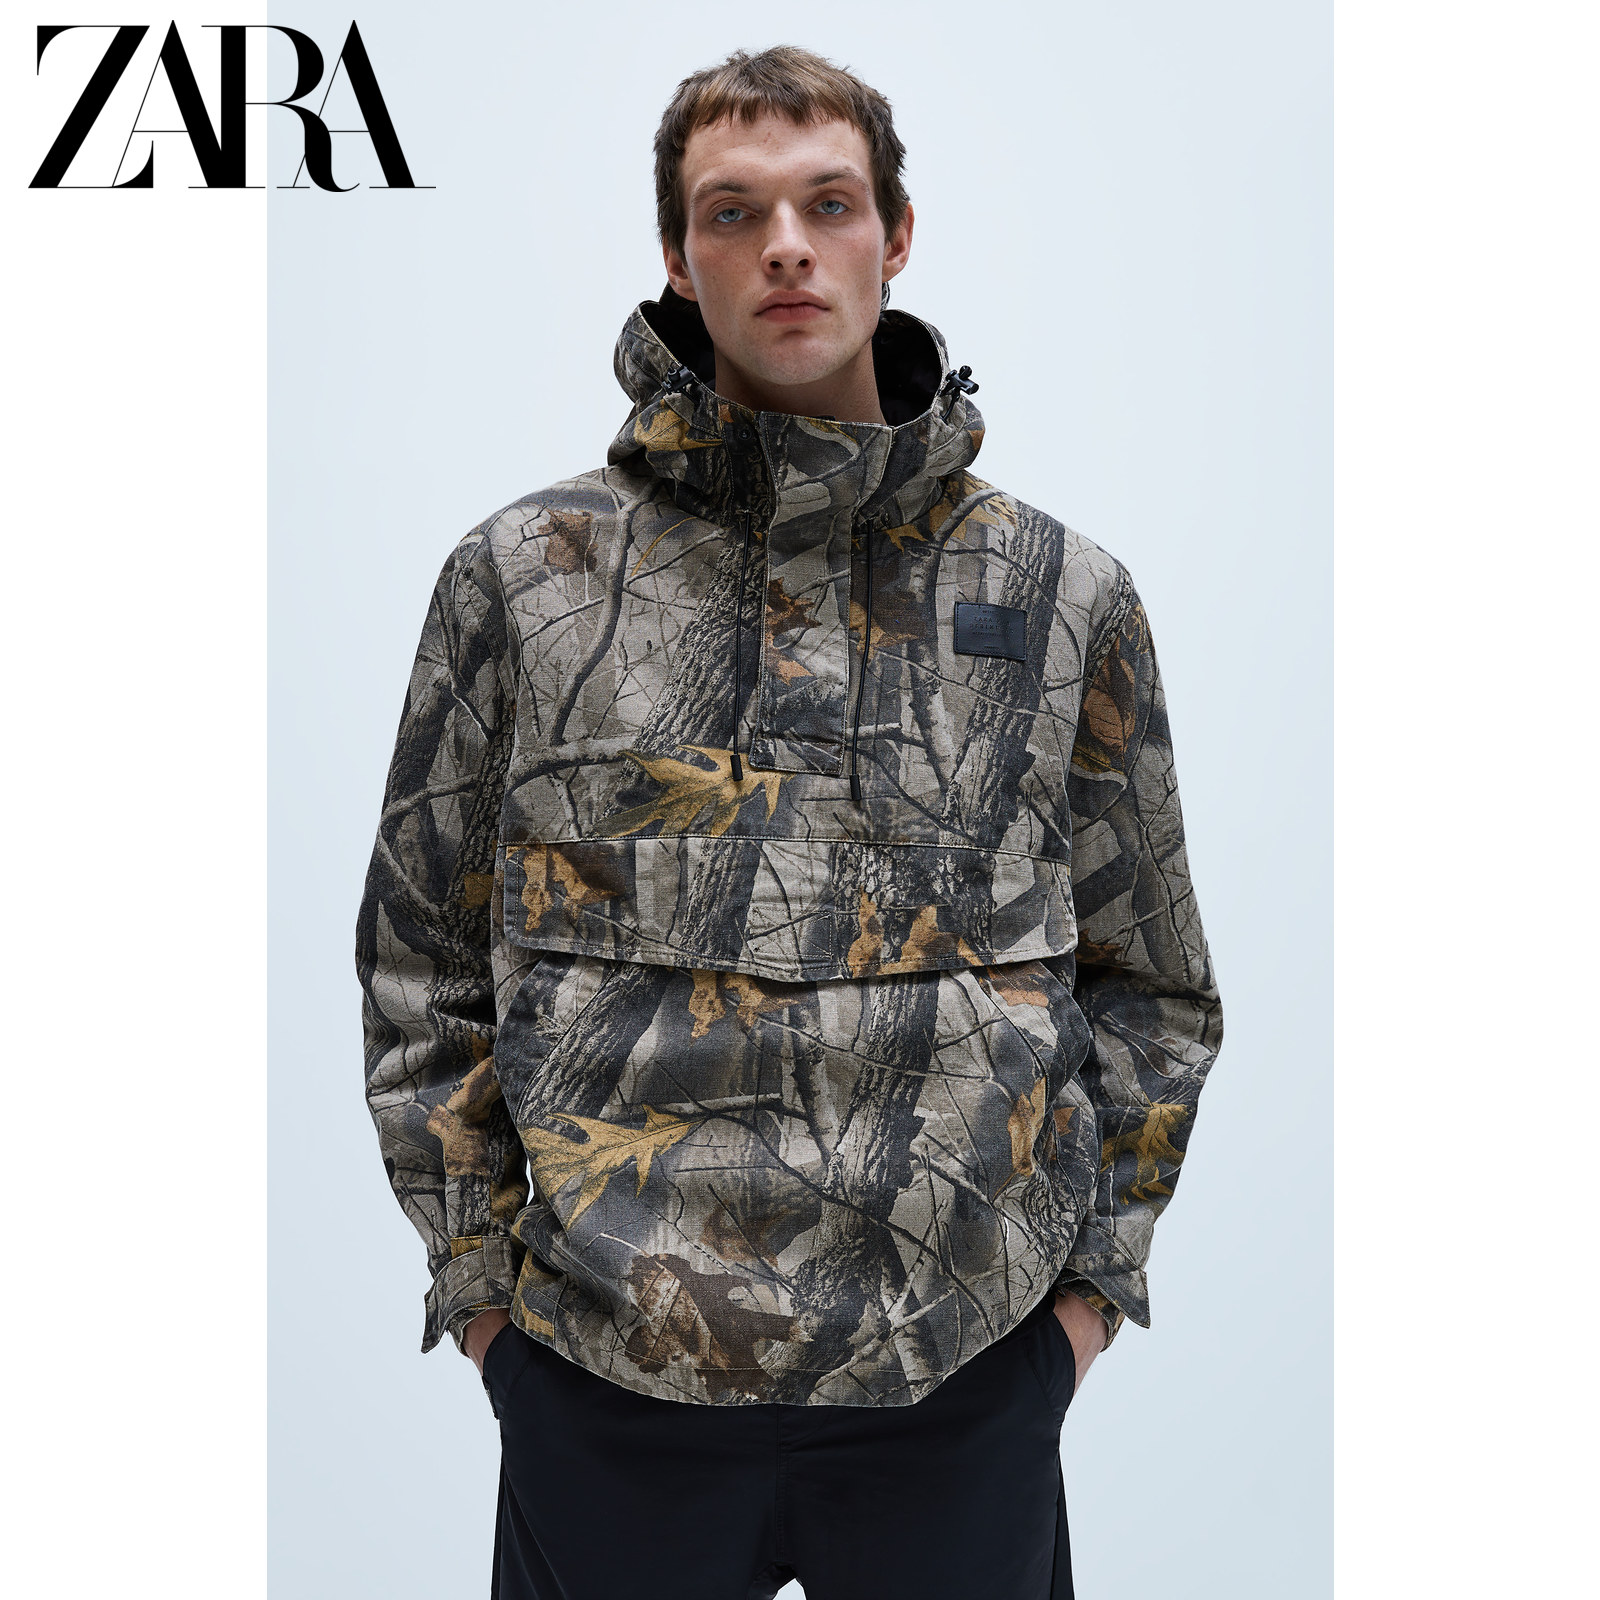 Zara new men's camouflage kangaroo pocket Half Zip Jacket Coat 01792412505